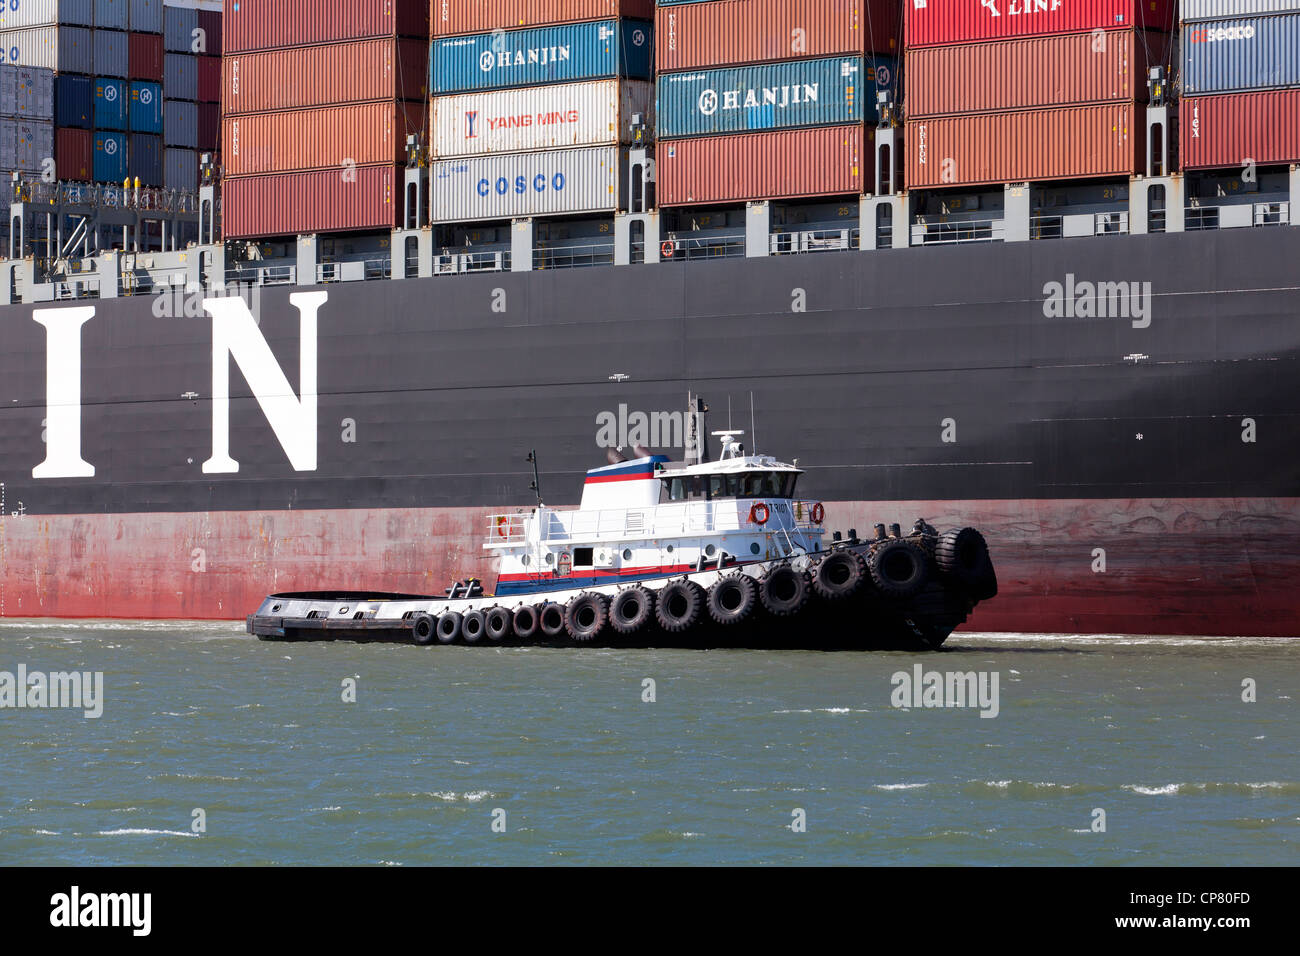 Hanjin shipping container ship, flagged by a tugboat, entering port of Oakland - California USA Stock Photo